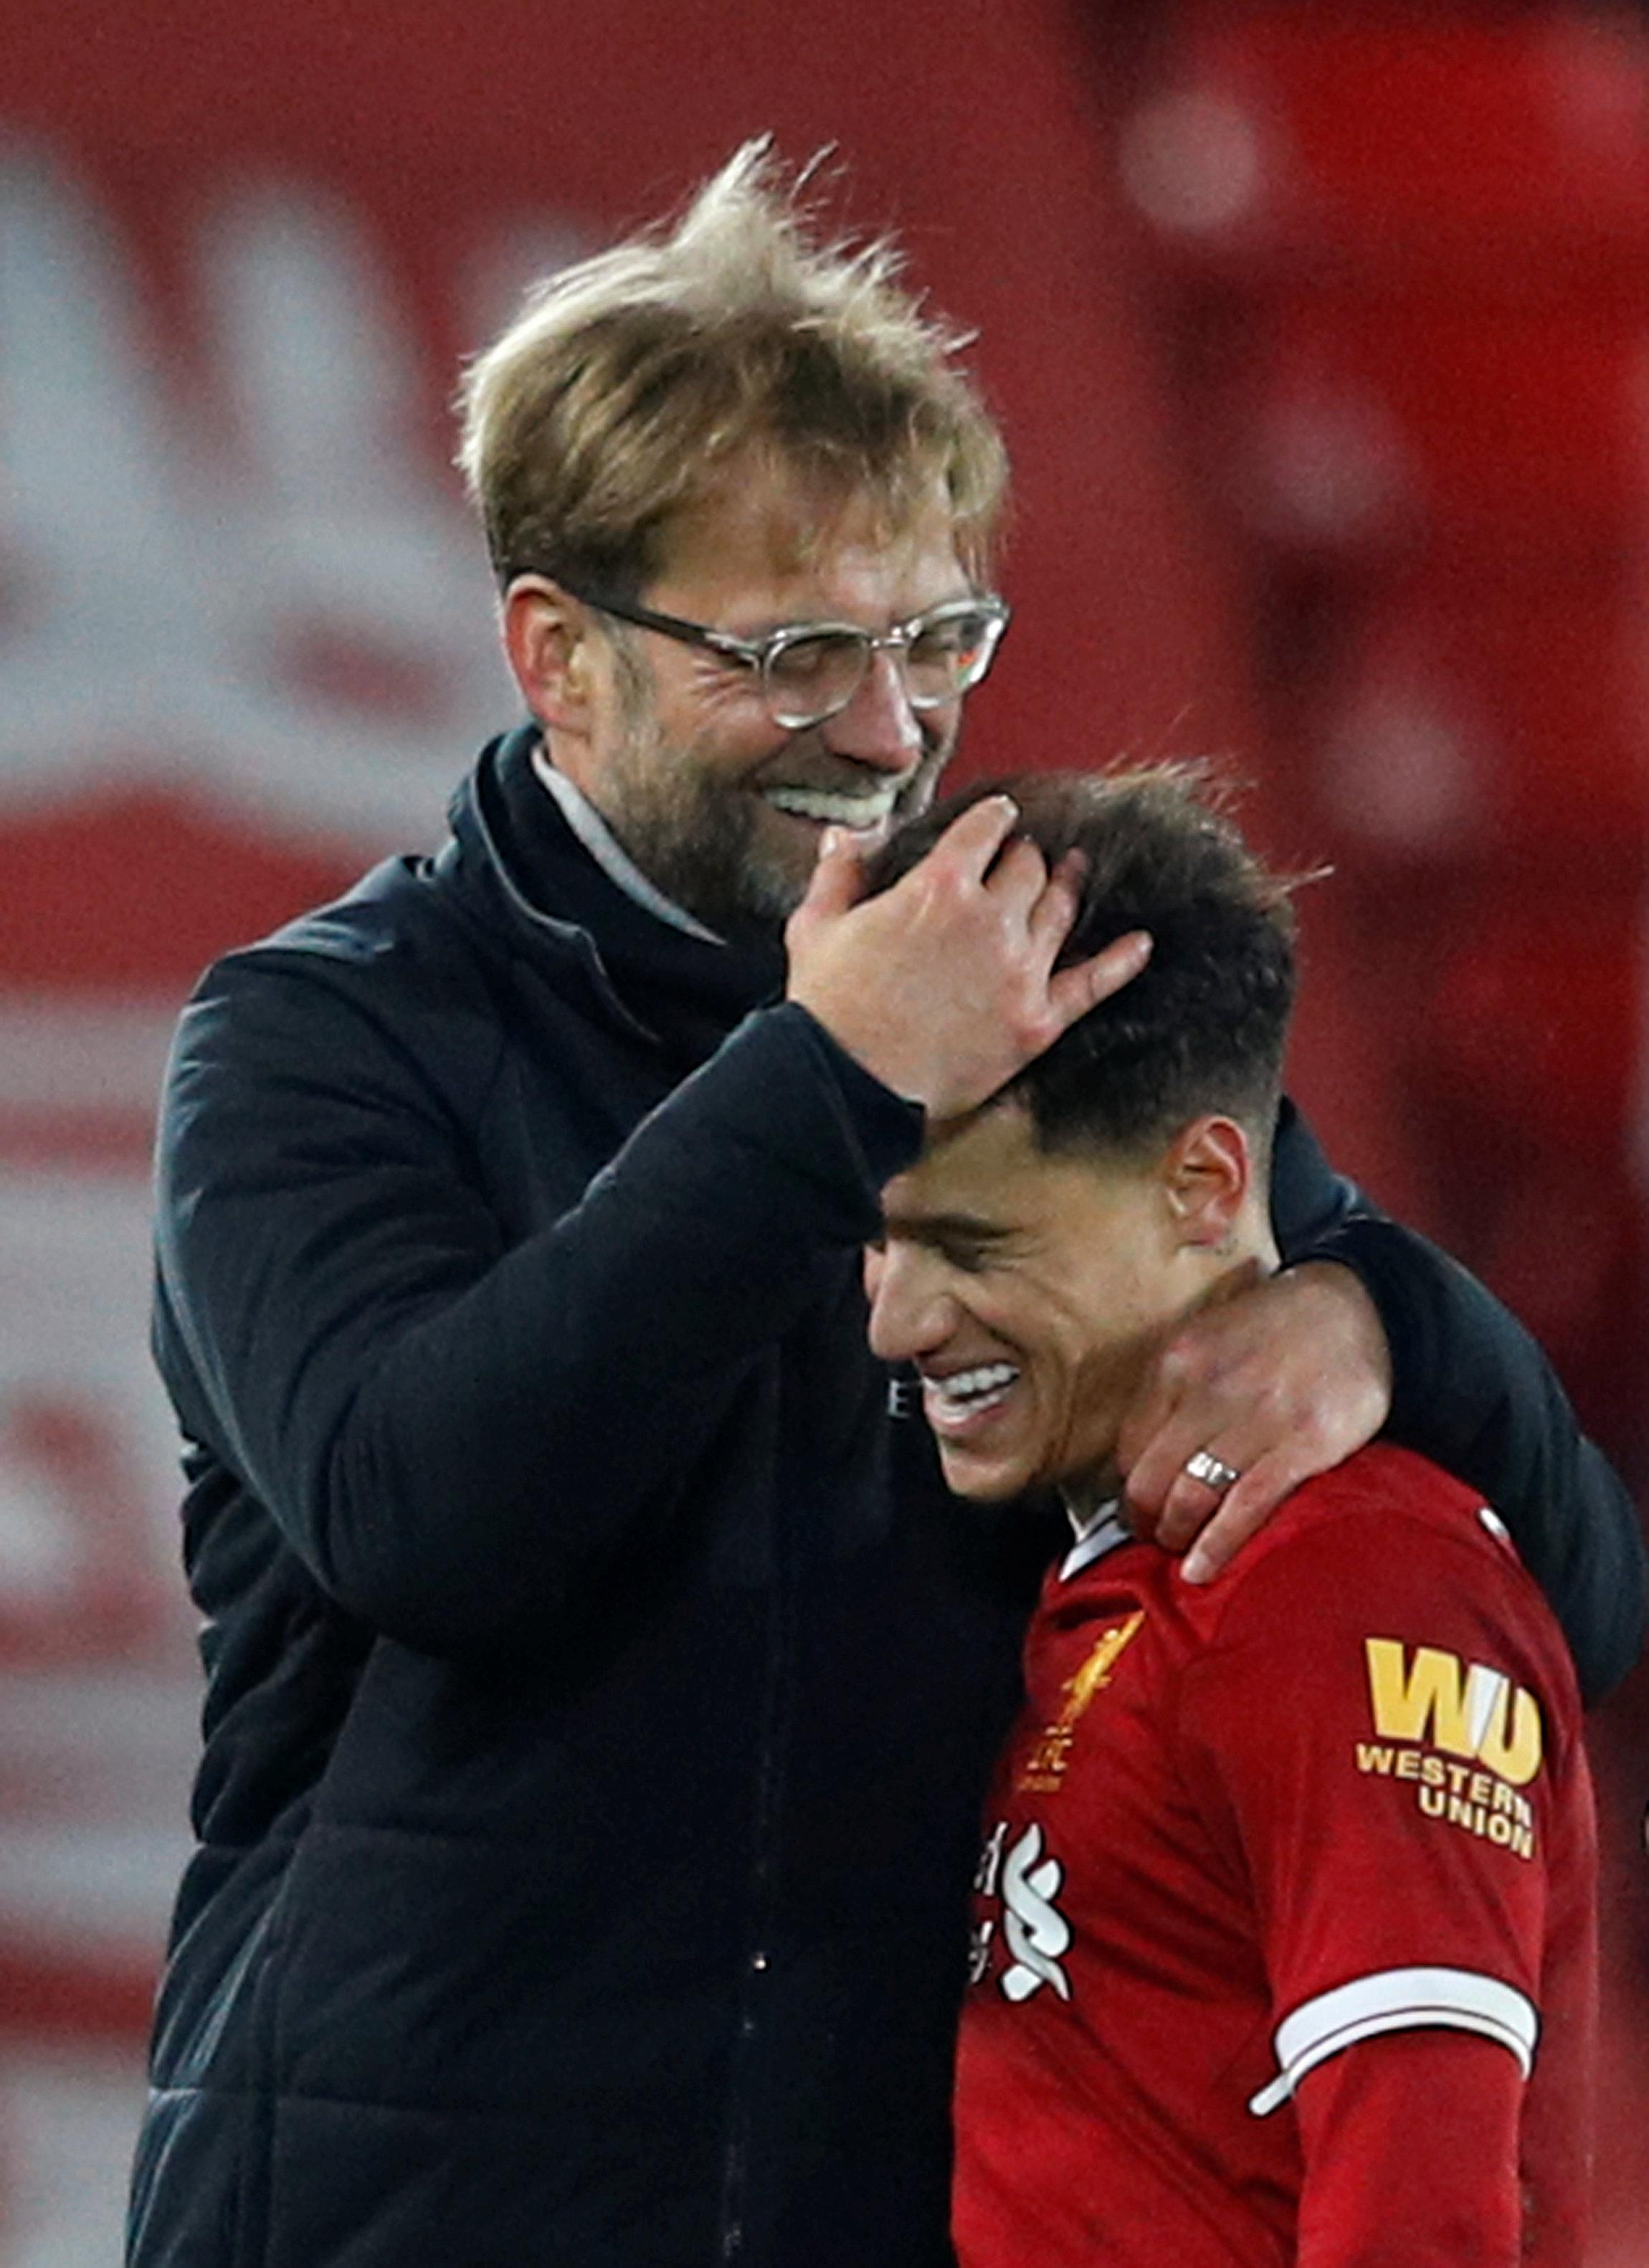 Klopp and Coutinho laughing at Barcelona's pathetic offer of £500million